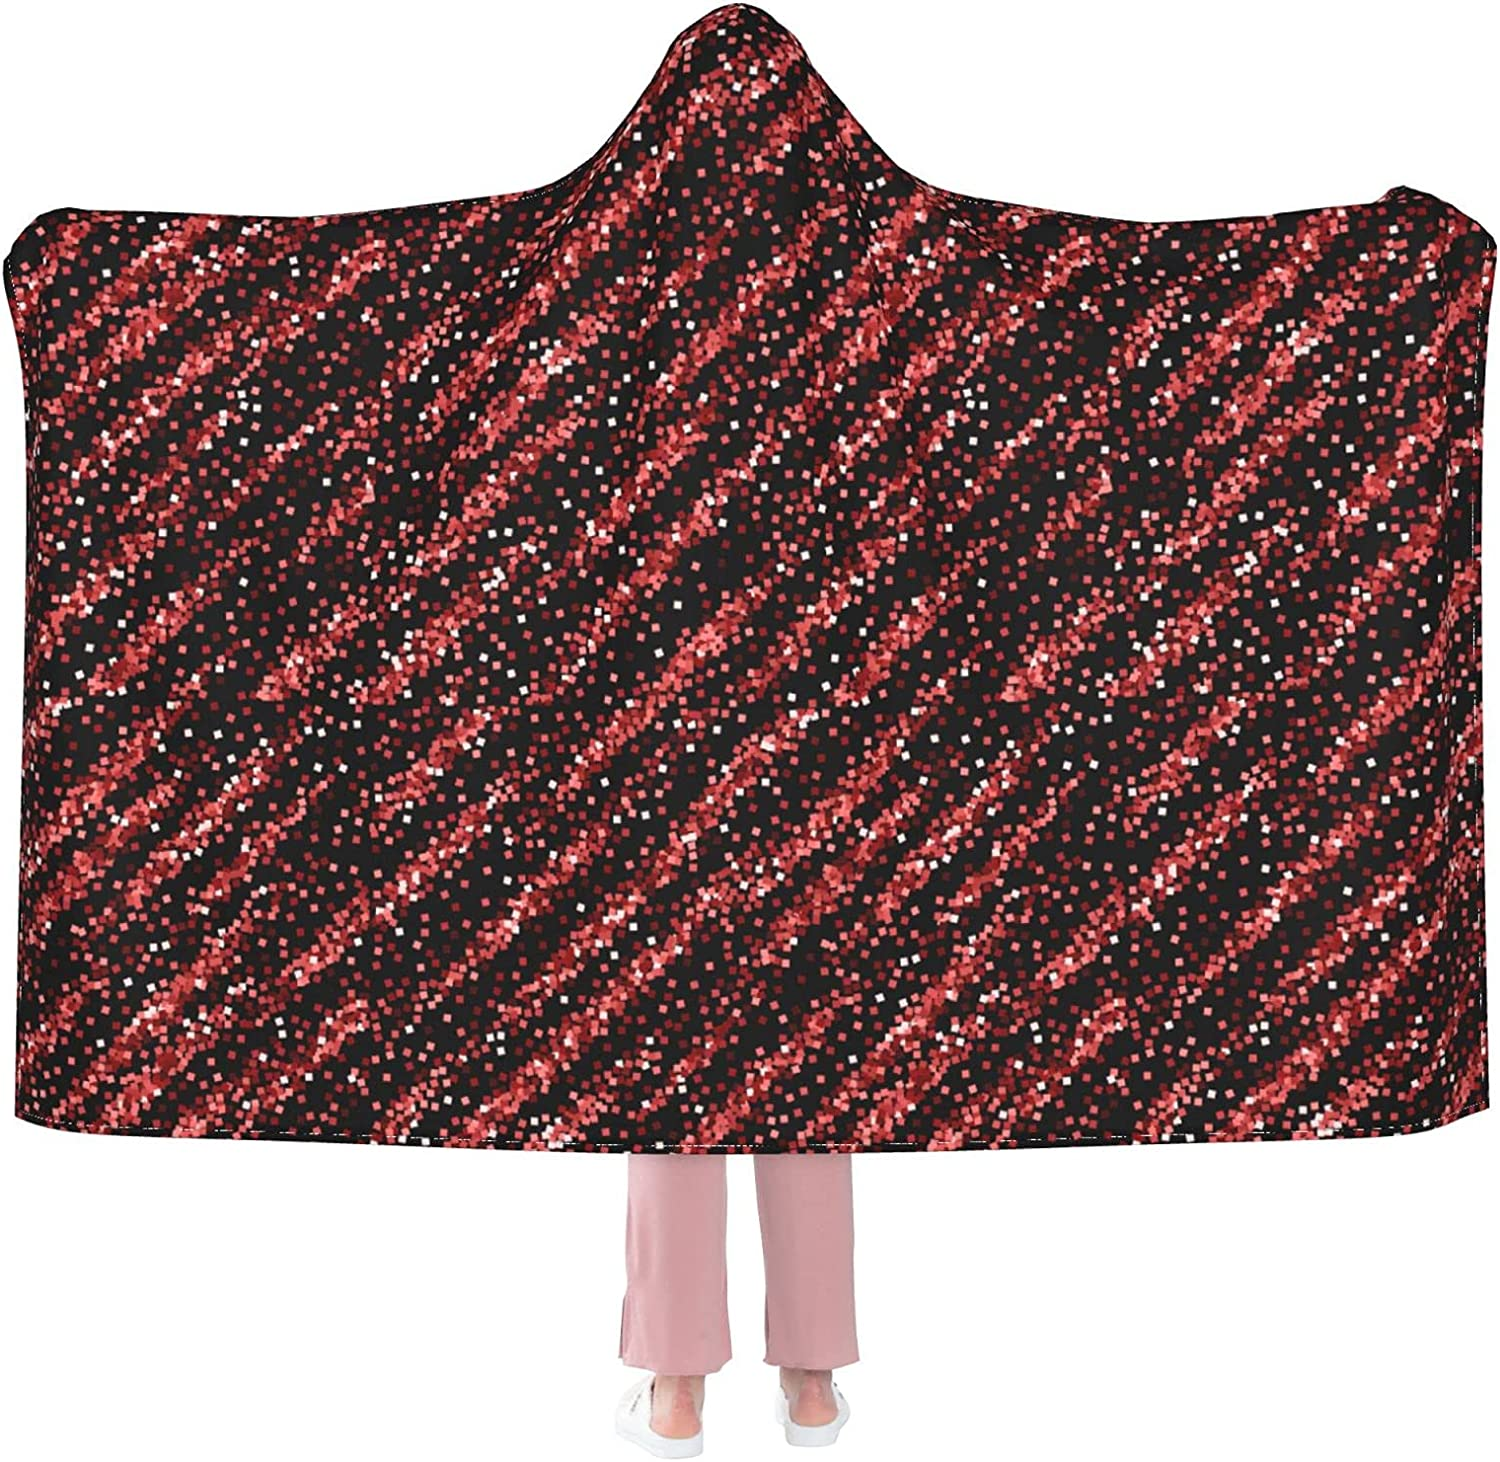 Red Gold Glitter Luxury Sparkling Discount mail Weekly update order Anti-P Blanket Hooded Confetti